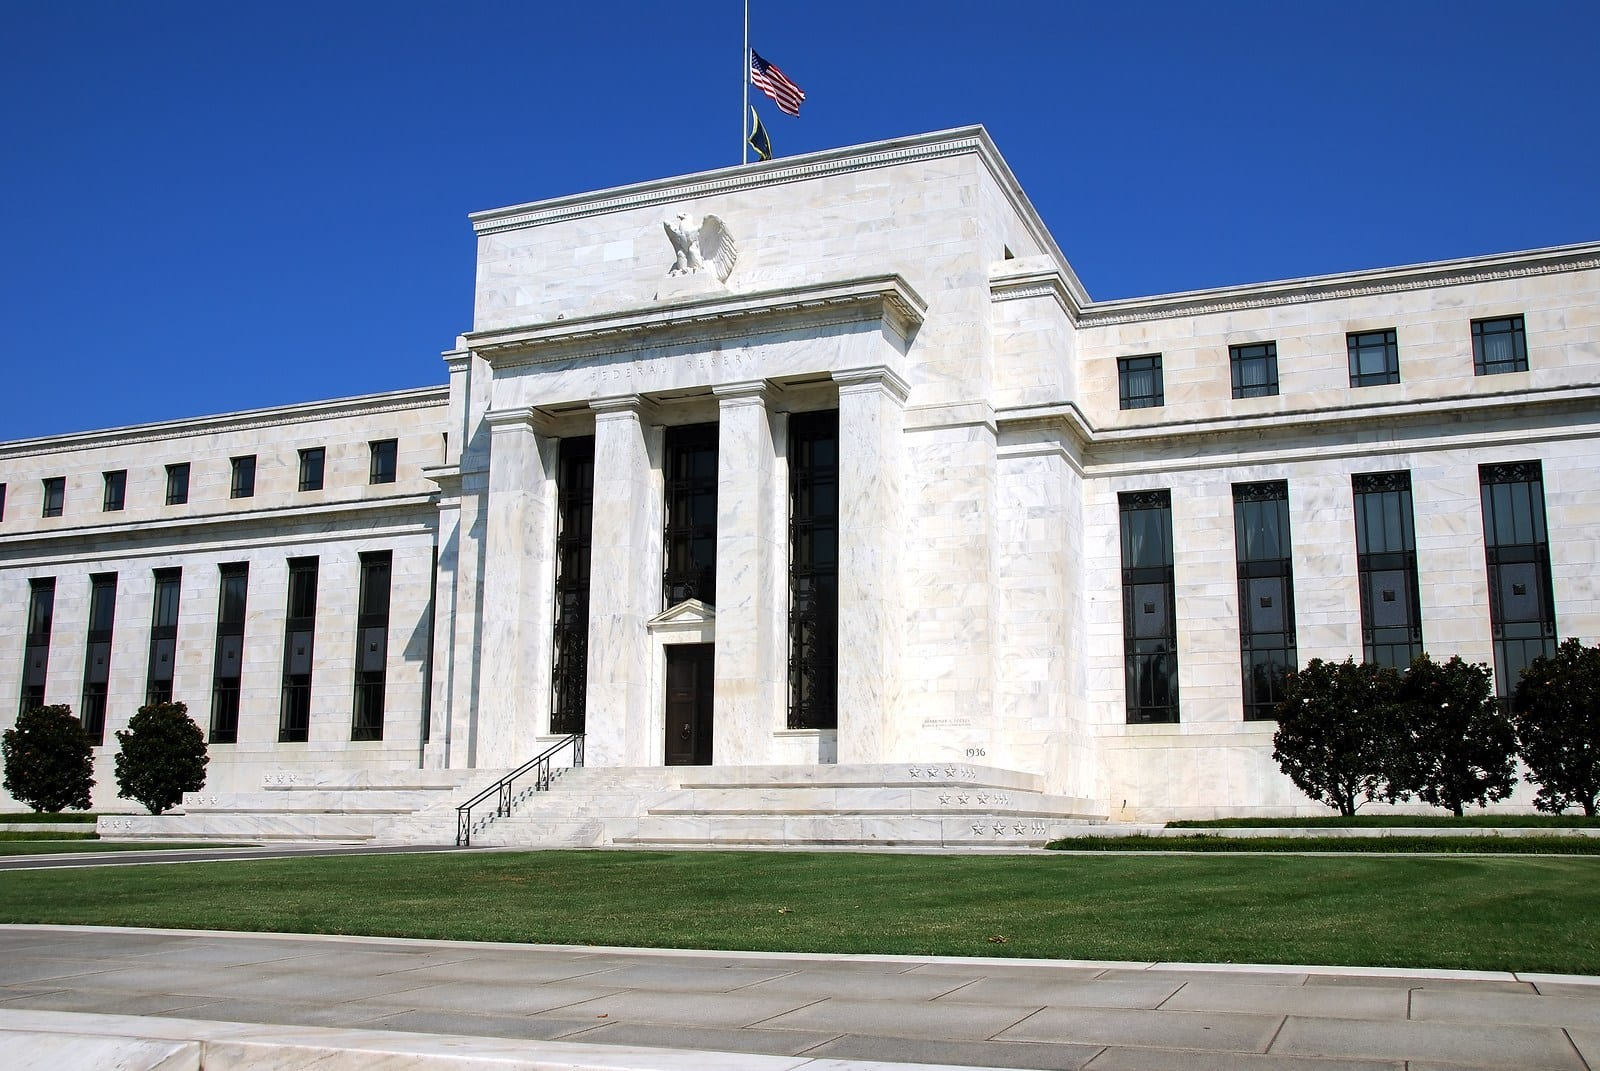 Federal Reserve Board News: Federal Reserve announces seventh triennial study to examine U.S. payments usage